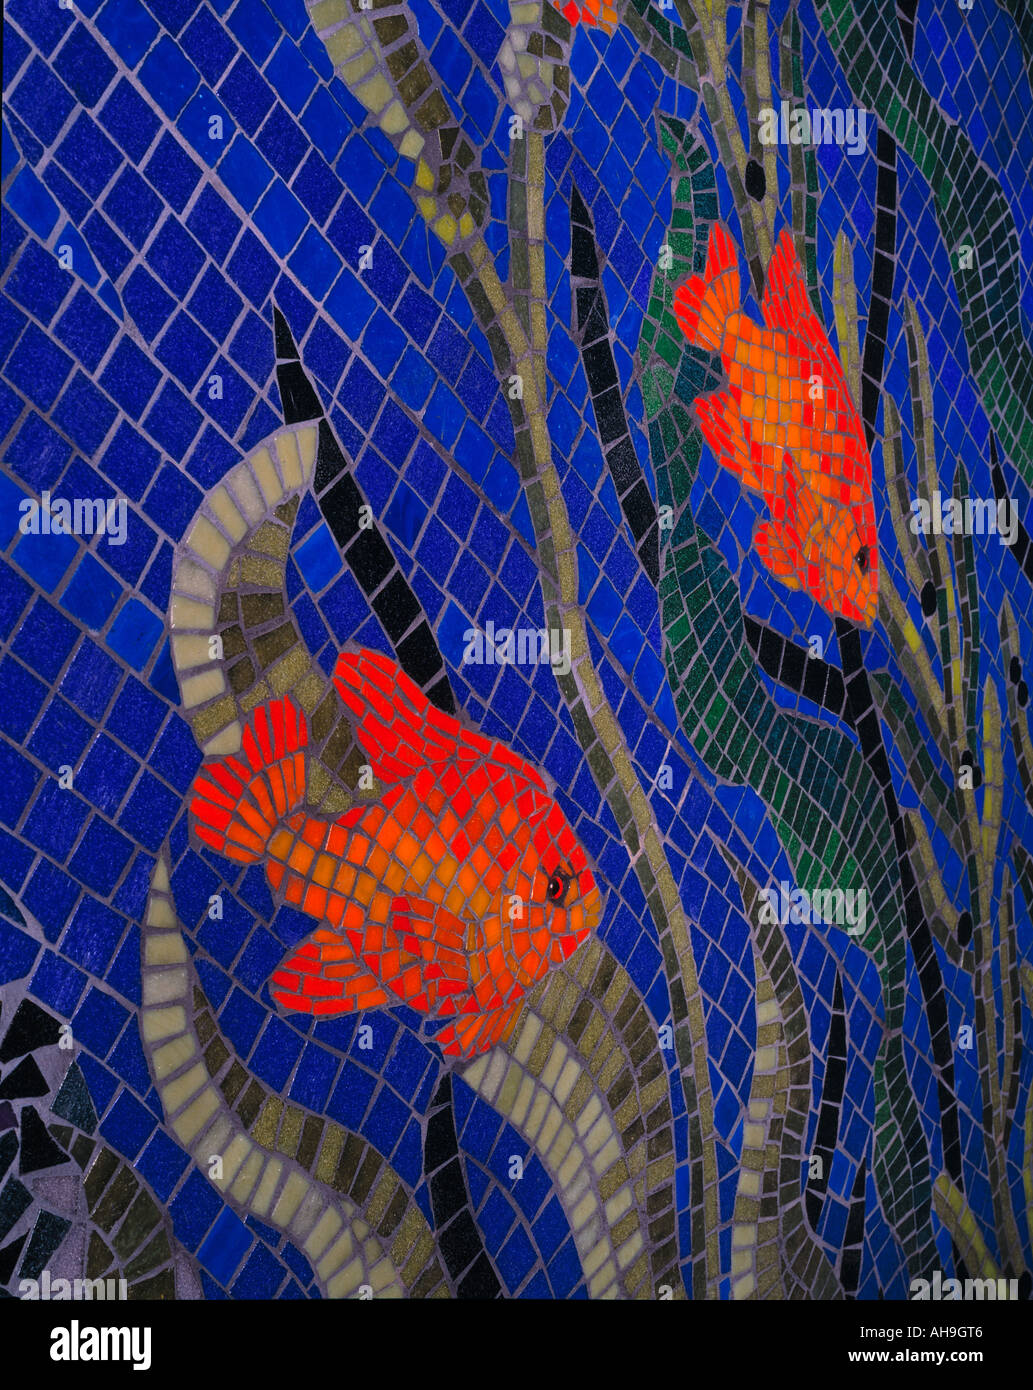 Architectural detail - Undersea fish mosaic on private house bathroom - Stock Image